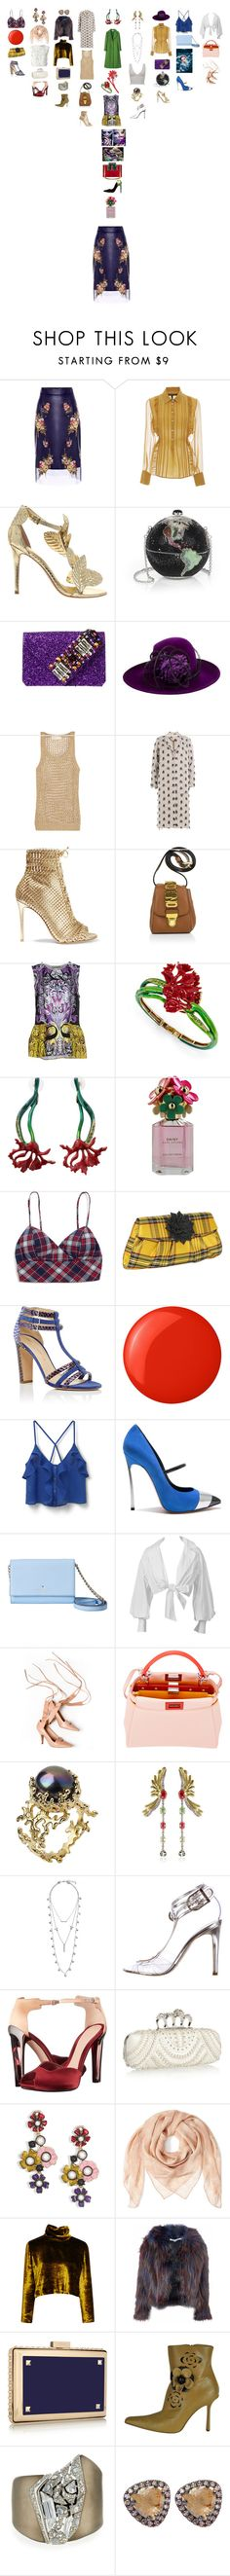 """""""Untitled #1677"""" by punchingwalls ❤ liked on Polyvore featuring Alexander McQueen, Marissa Webb, KOTUR, Judith Leiber, GEDEBE, Philip Treacy, MICHAEL Michael Kors, MSGM, Gianvito Rossi and Moschino"""